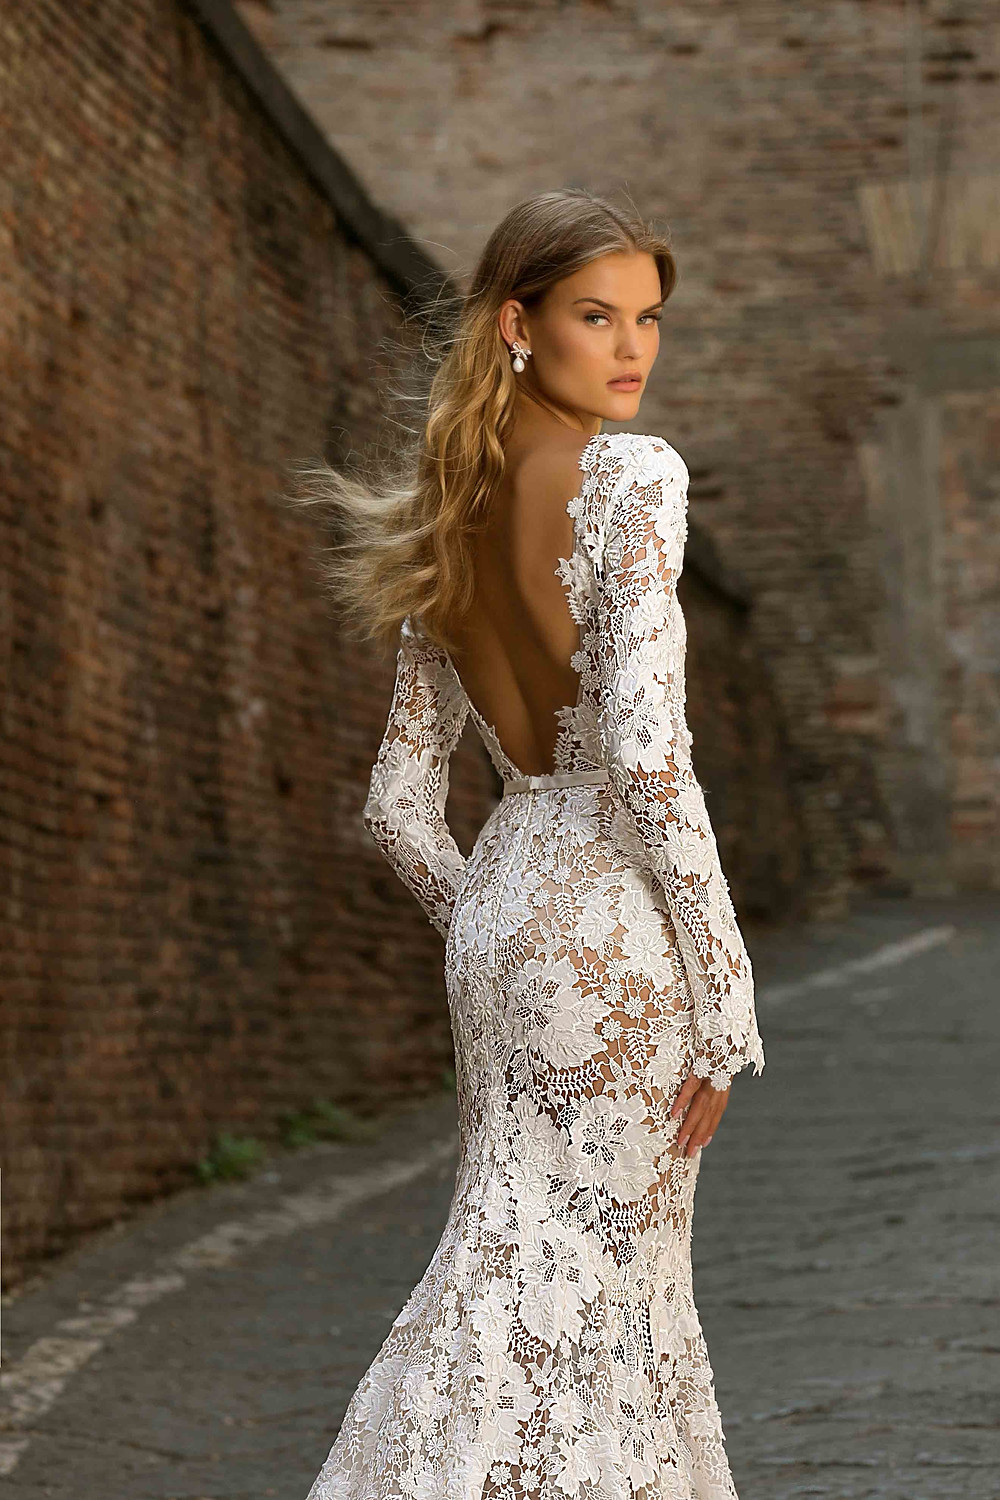 A lace mermaid wedding dress with long sleeves and a low back